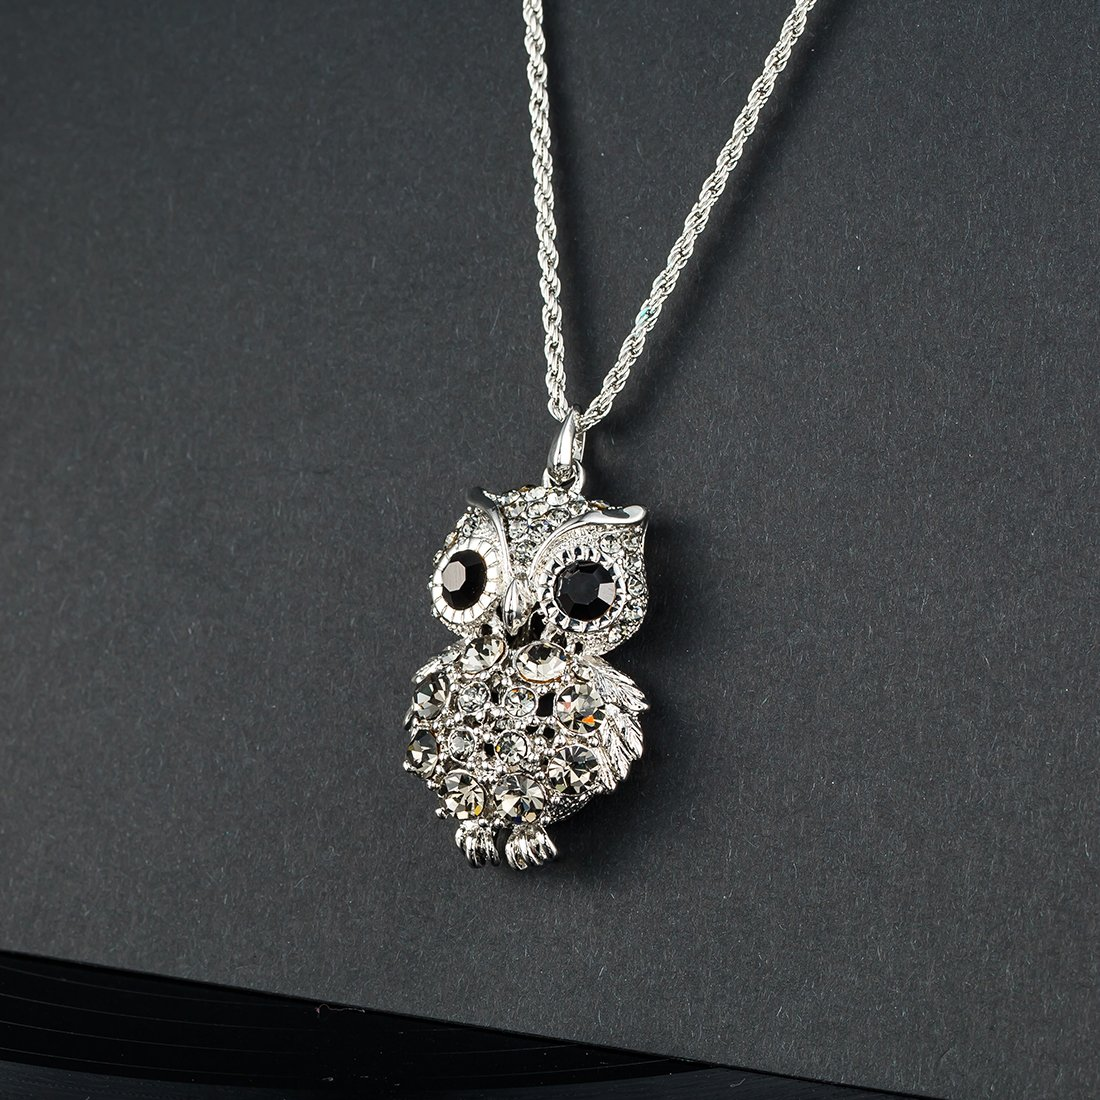 NEOGLORY Jewelry Full of Rhinestone Owl Long Chain Pendant Necklace 2 Colors with Jewelry Box